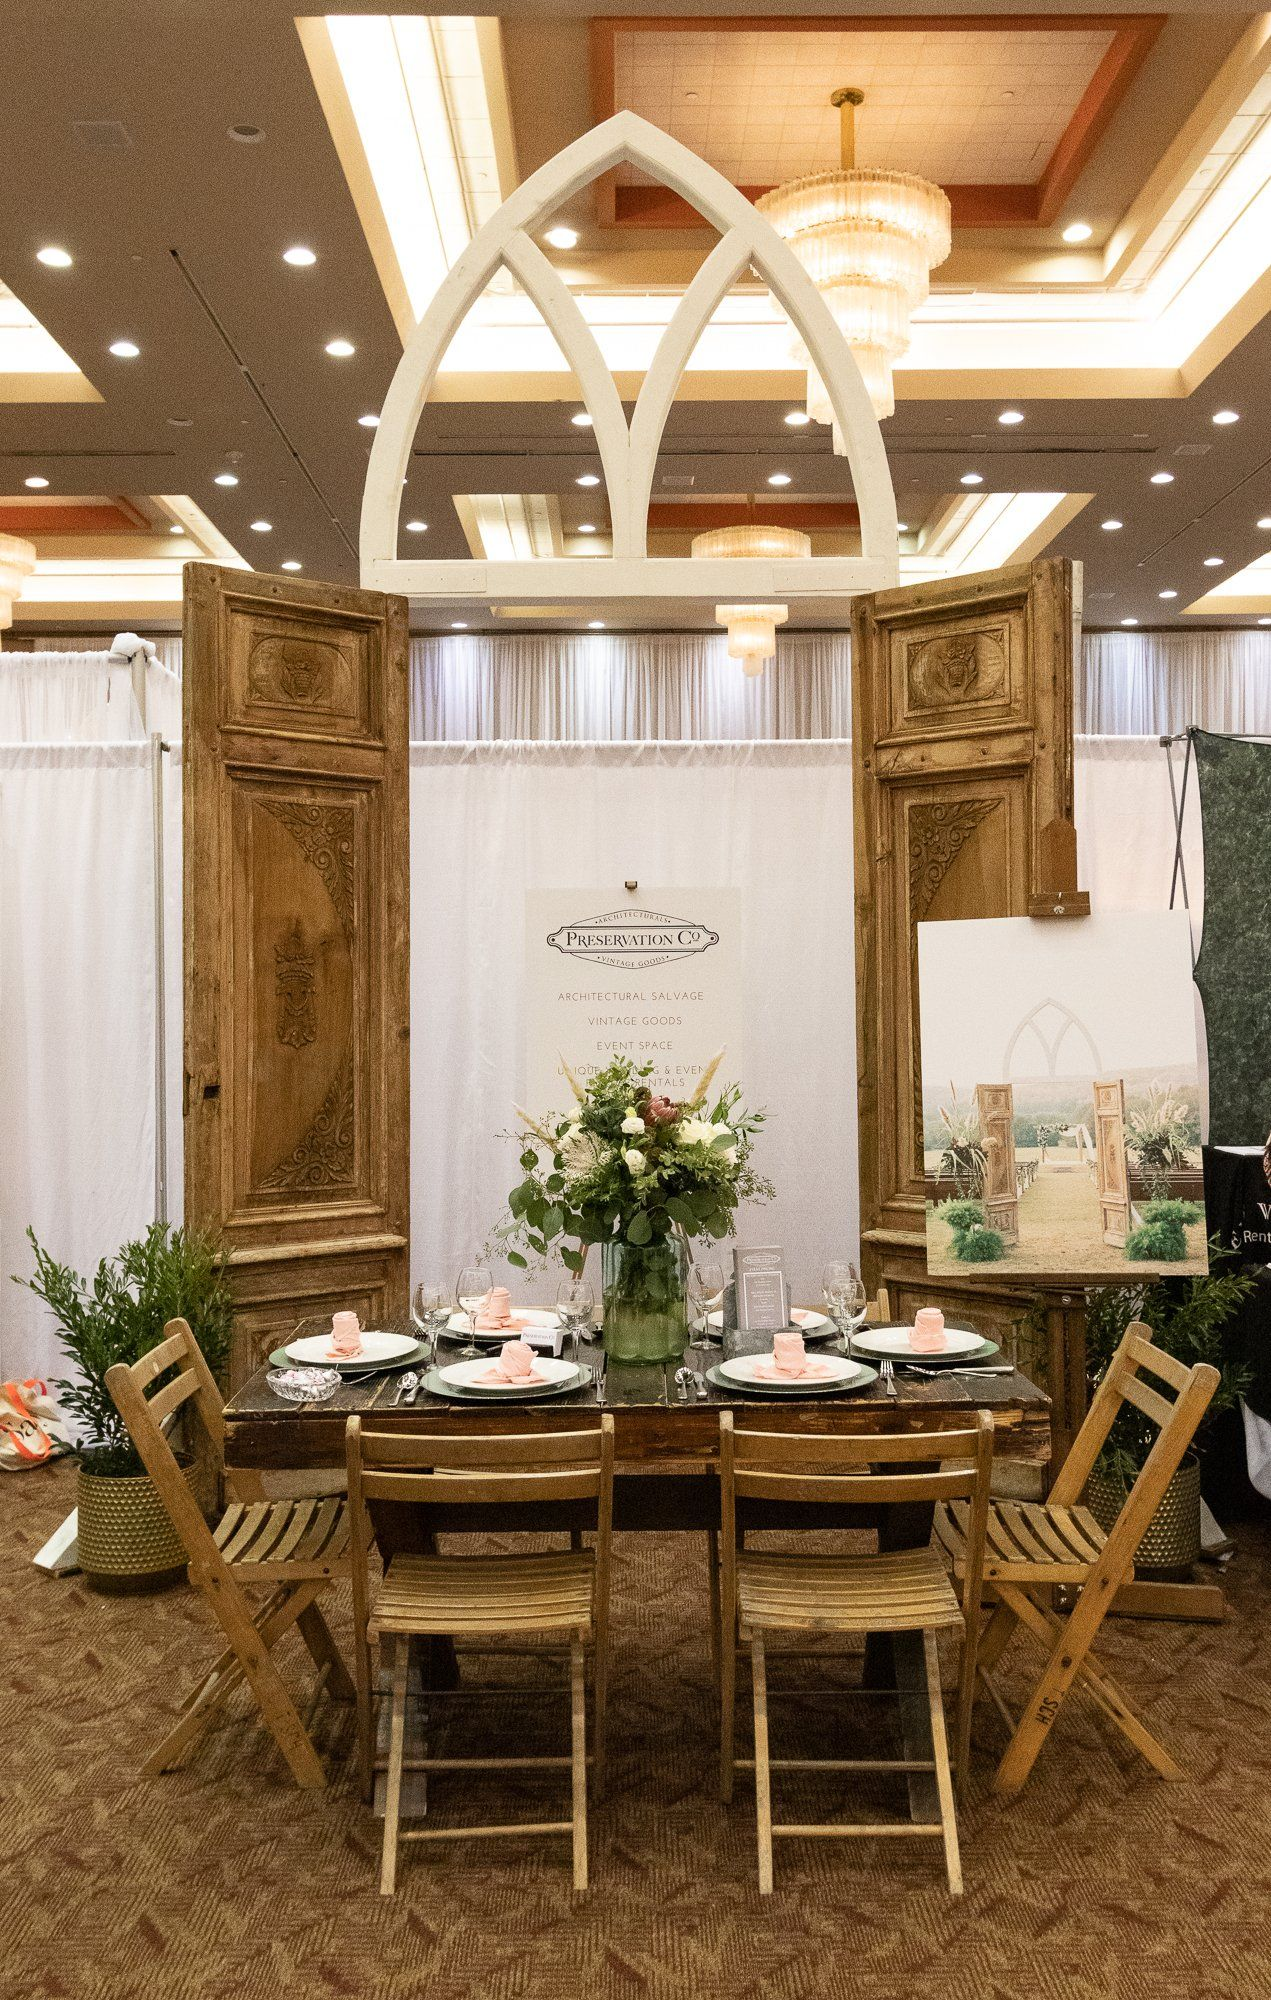 Event Space and Fixture Rentals Preservation Company in